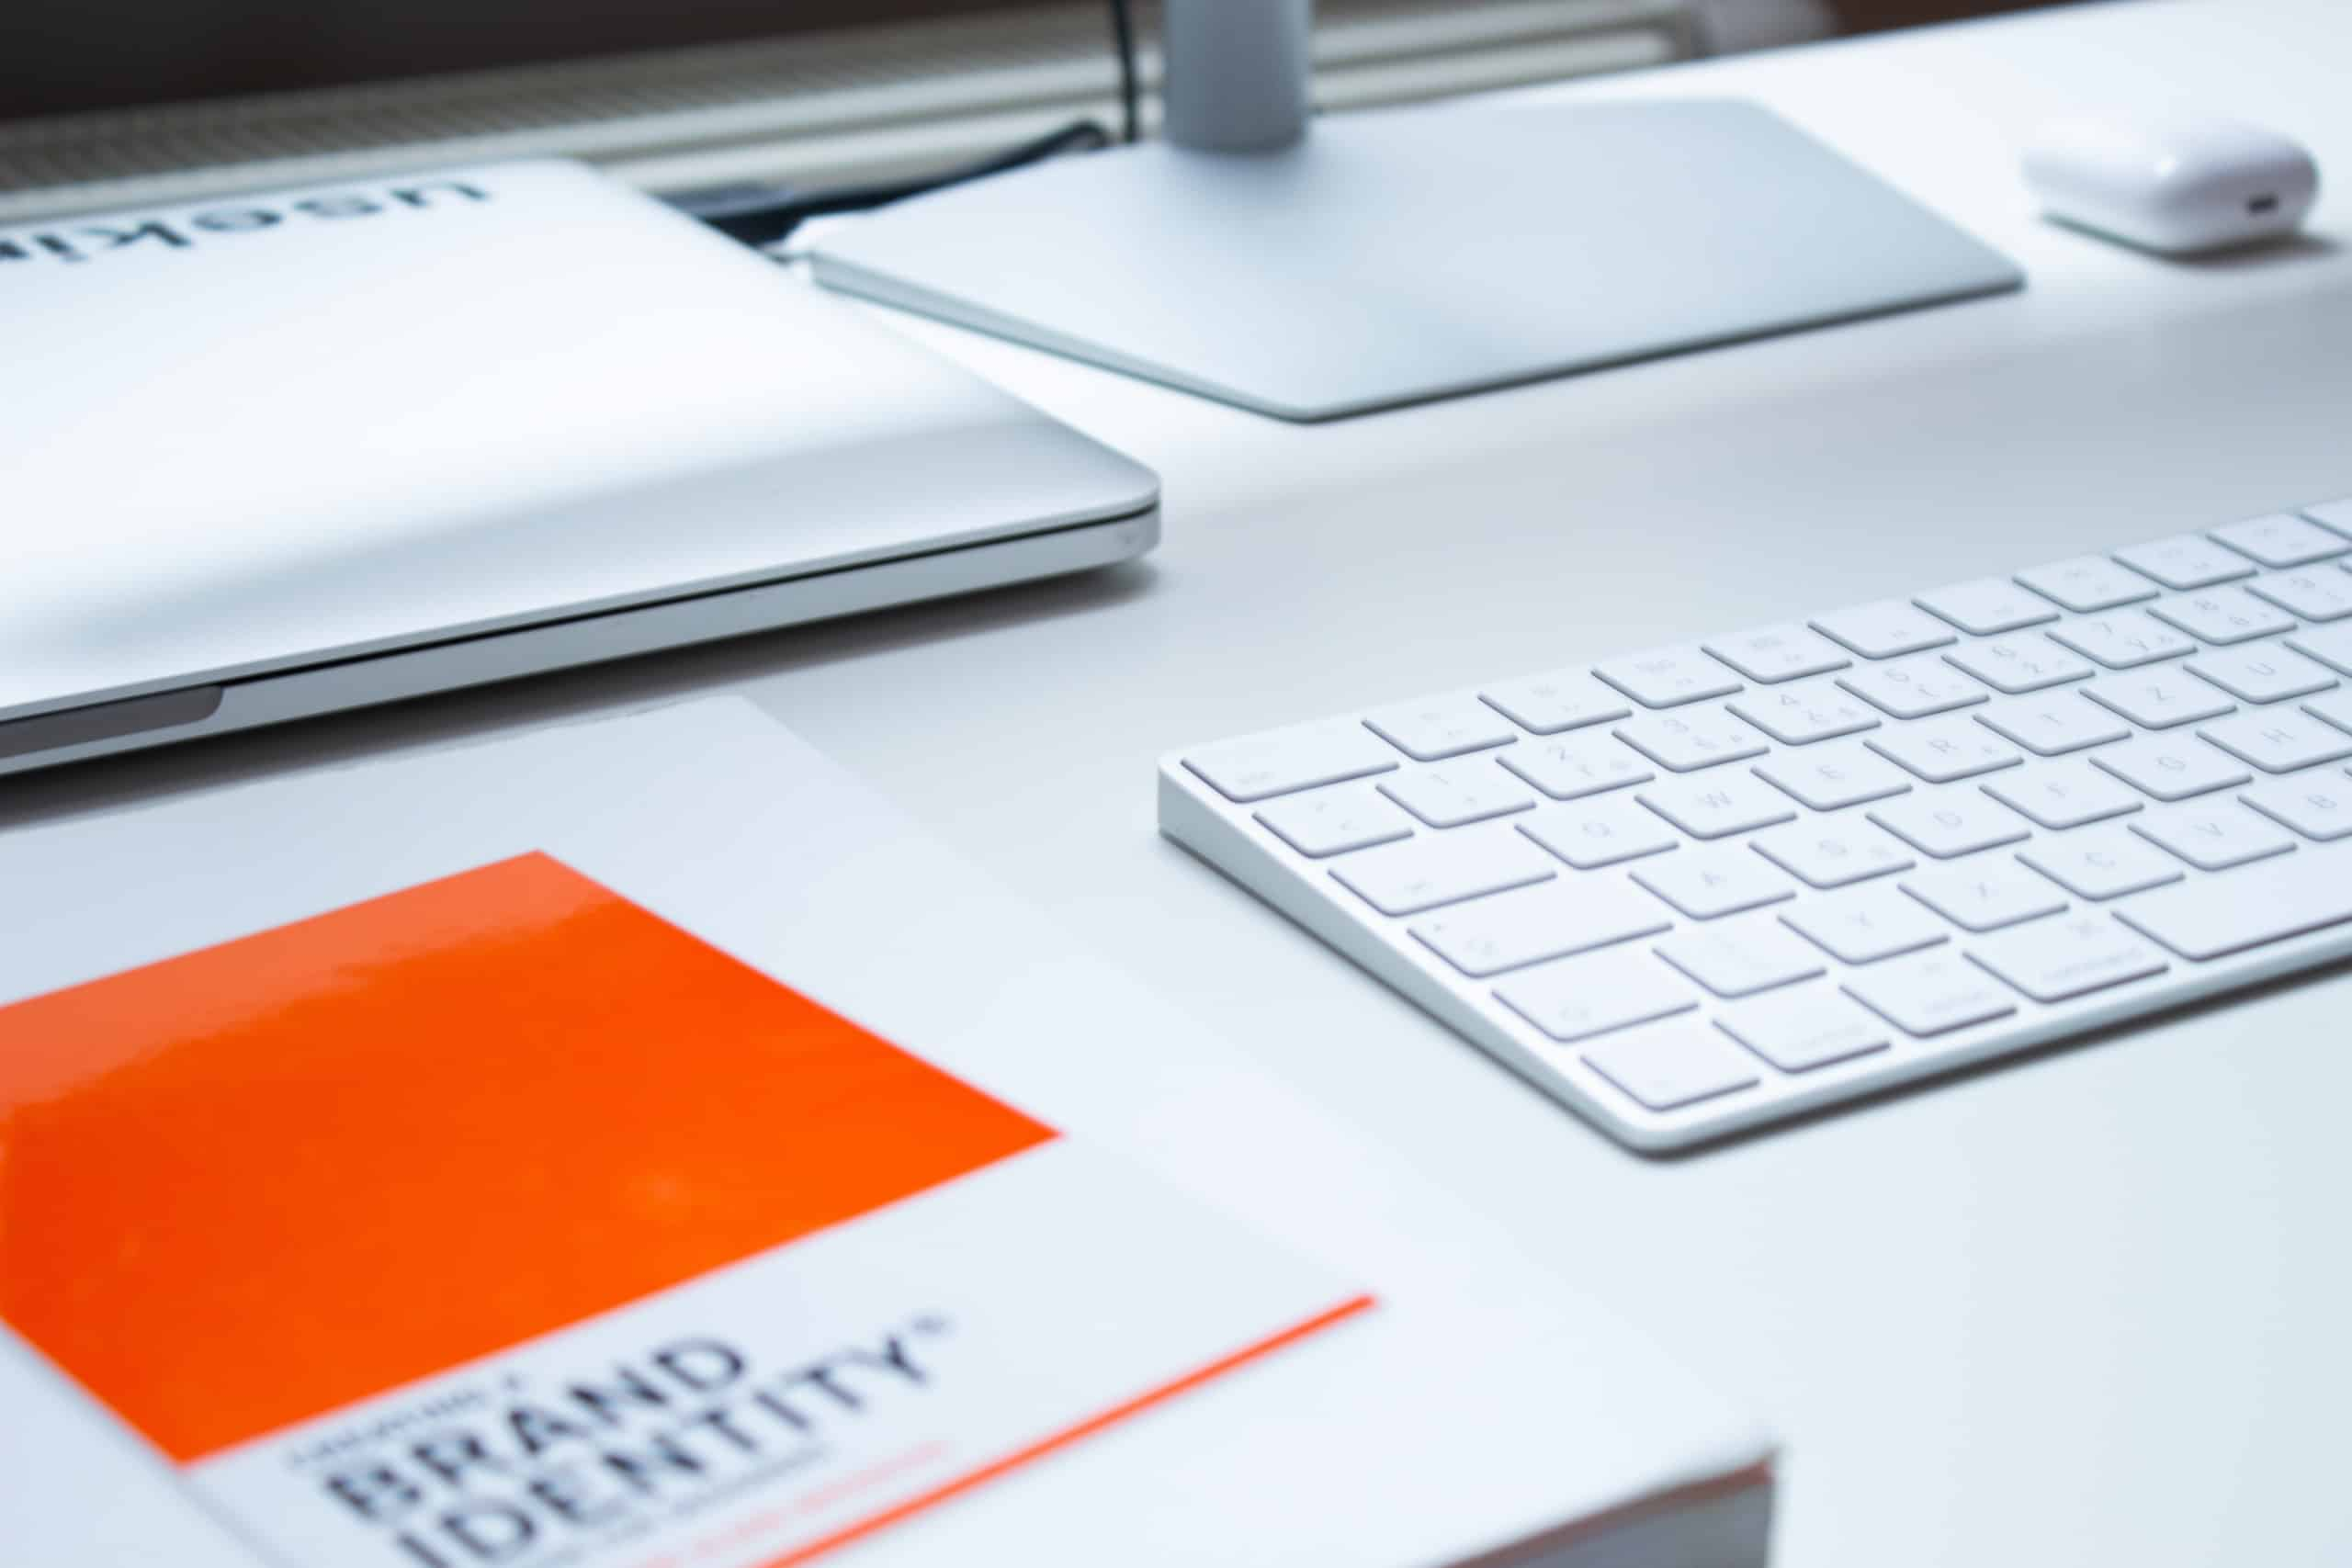 Book about brand identity on desk